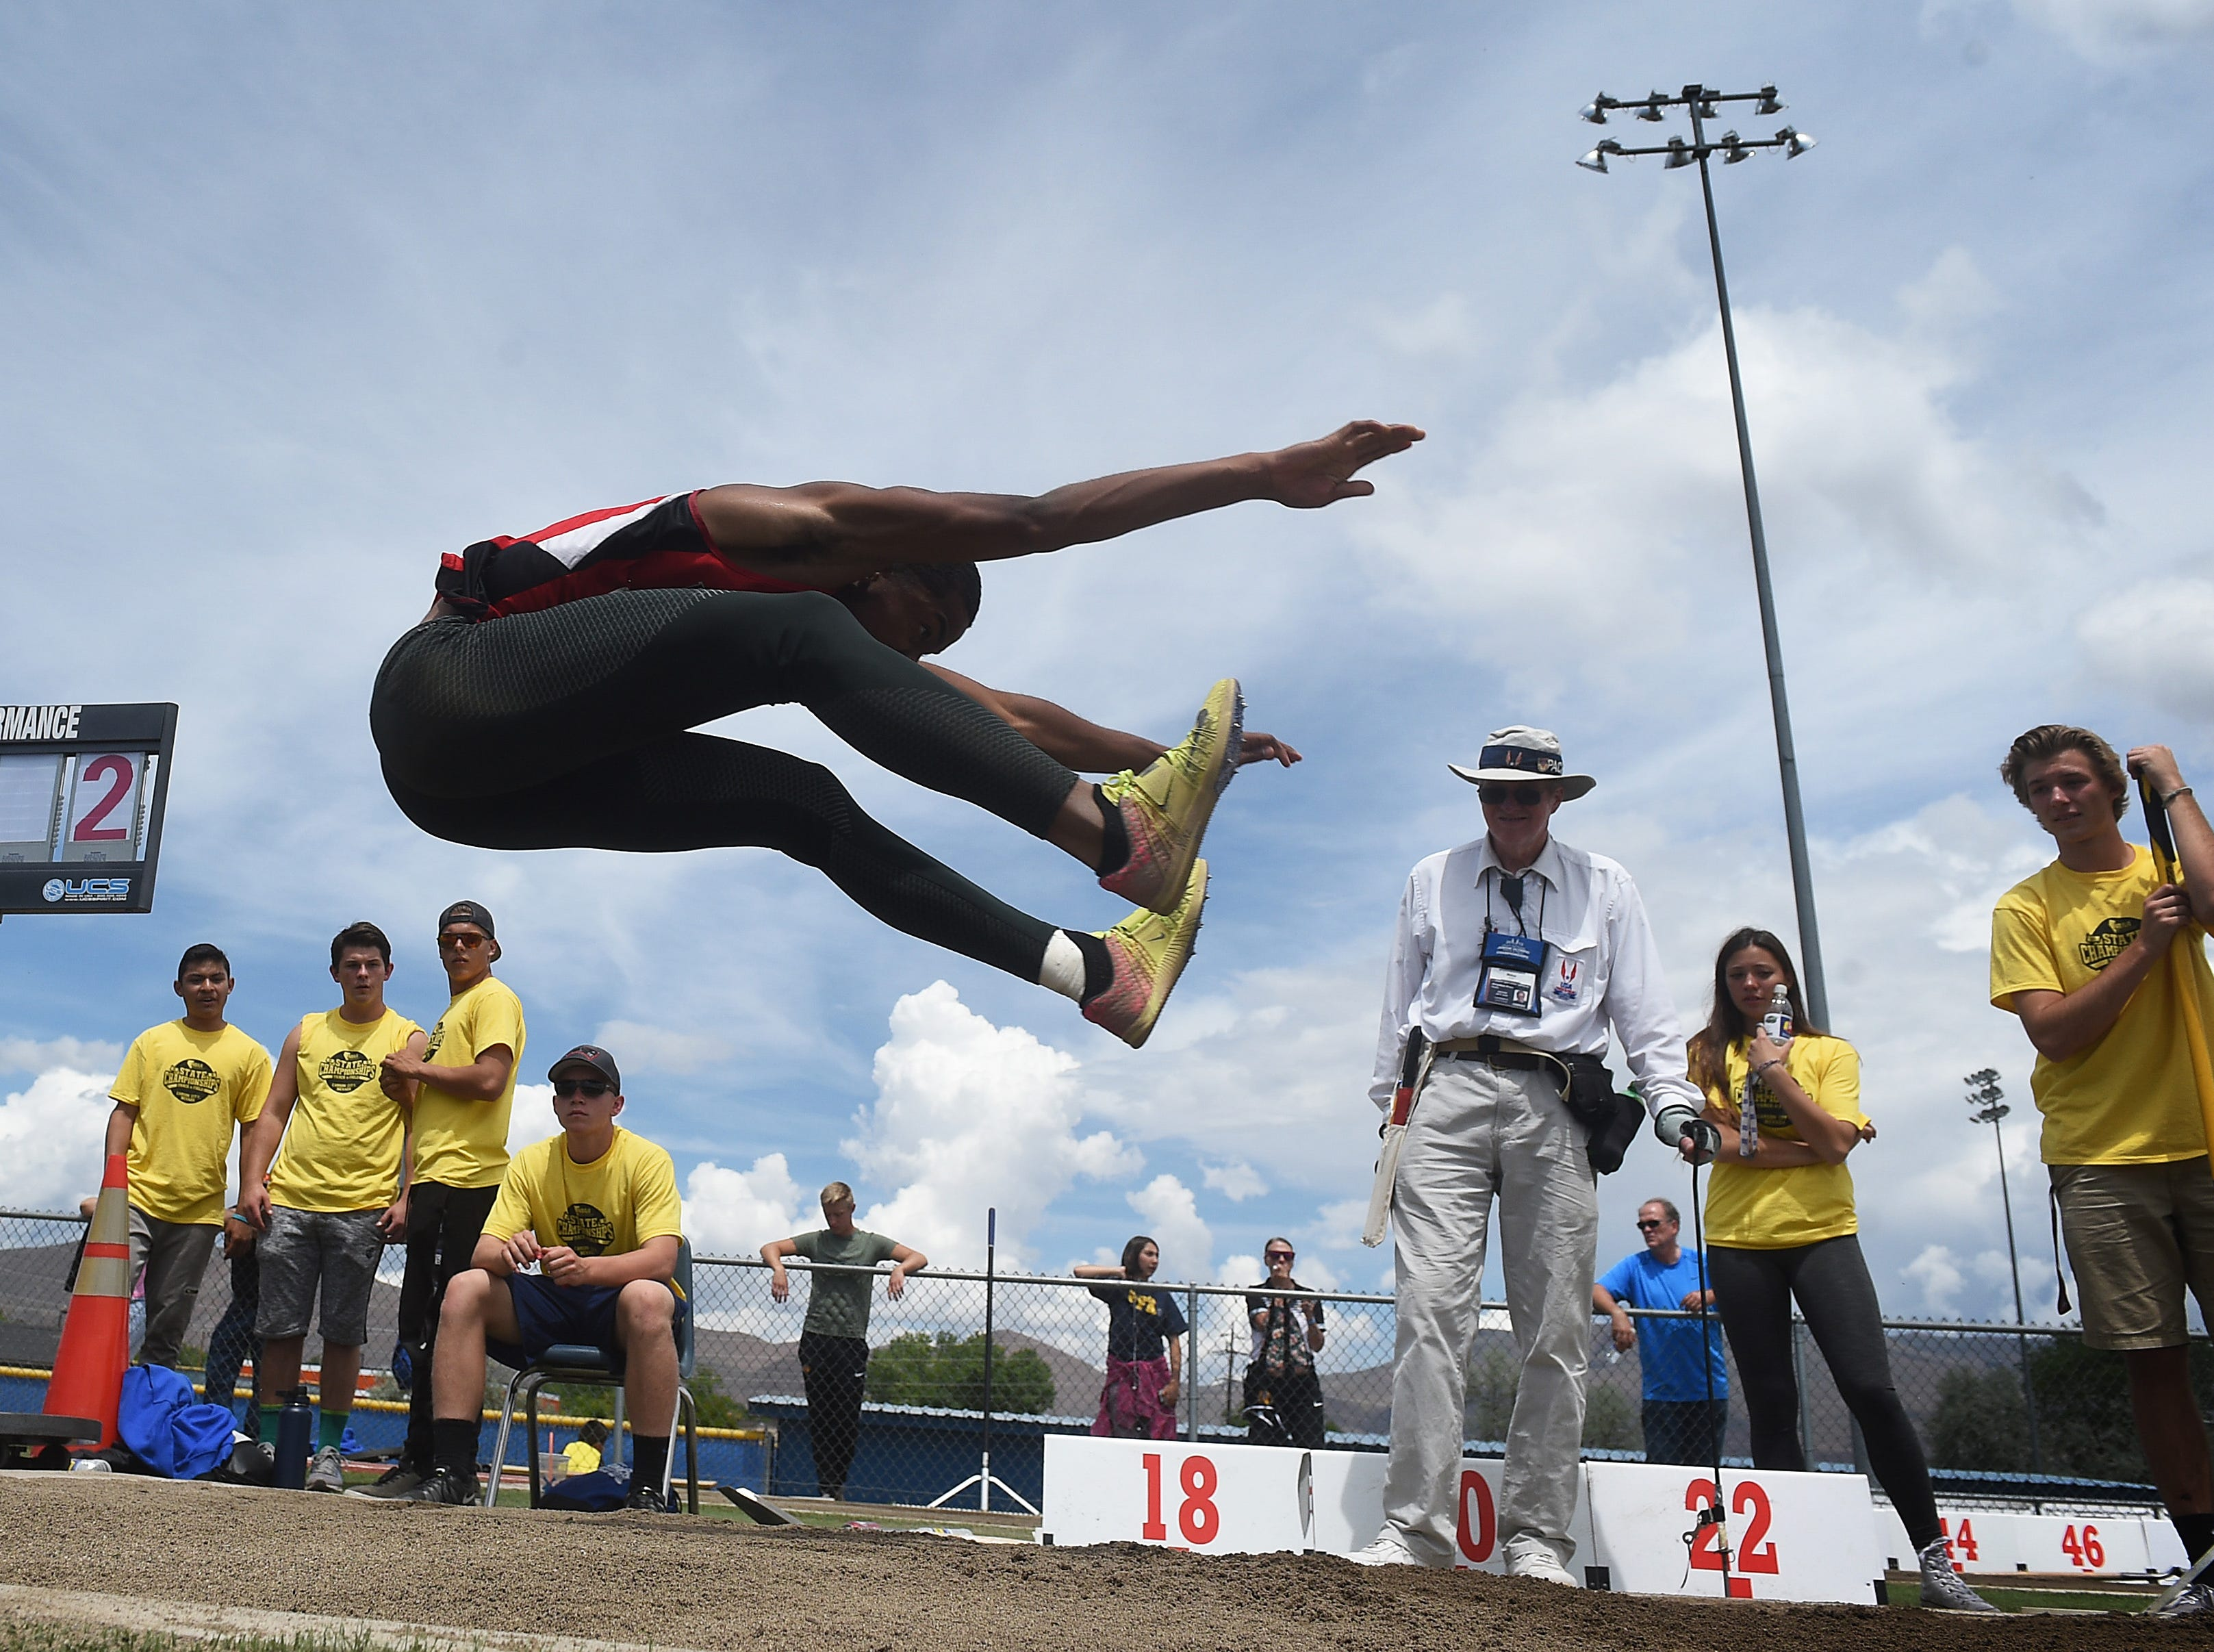 Las Vegas High's Marlon Harrison competes in the long jump during the NIAA Nevada State High School Track & Field Championships in Carson City on May 19, 2018.